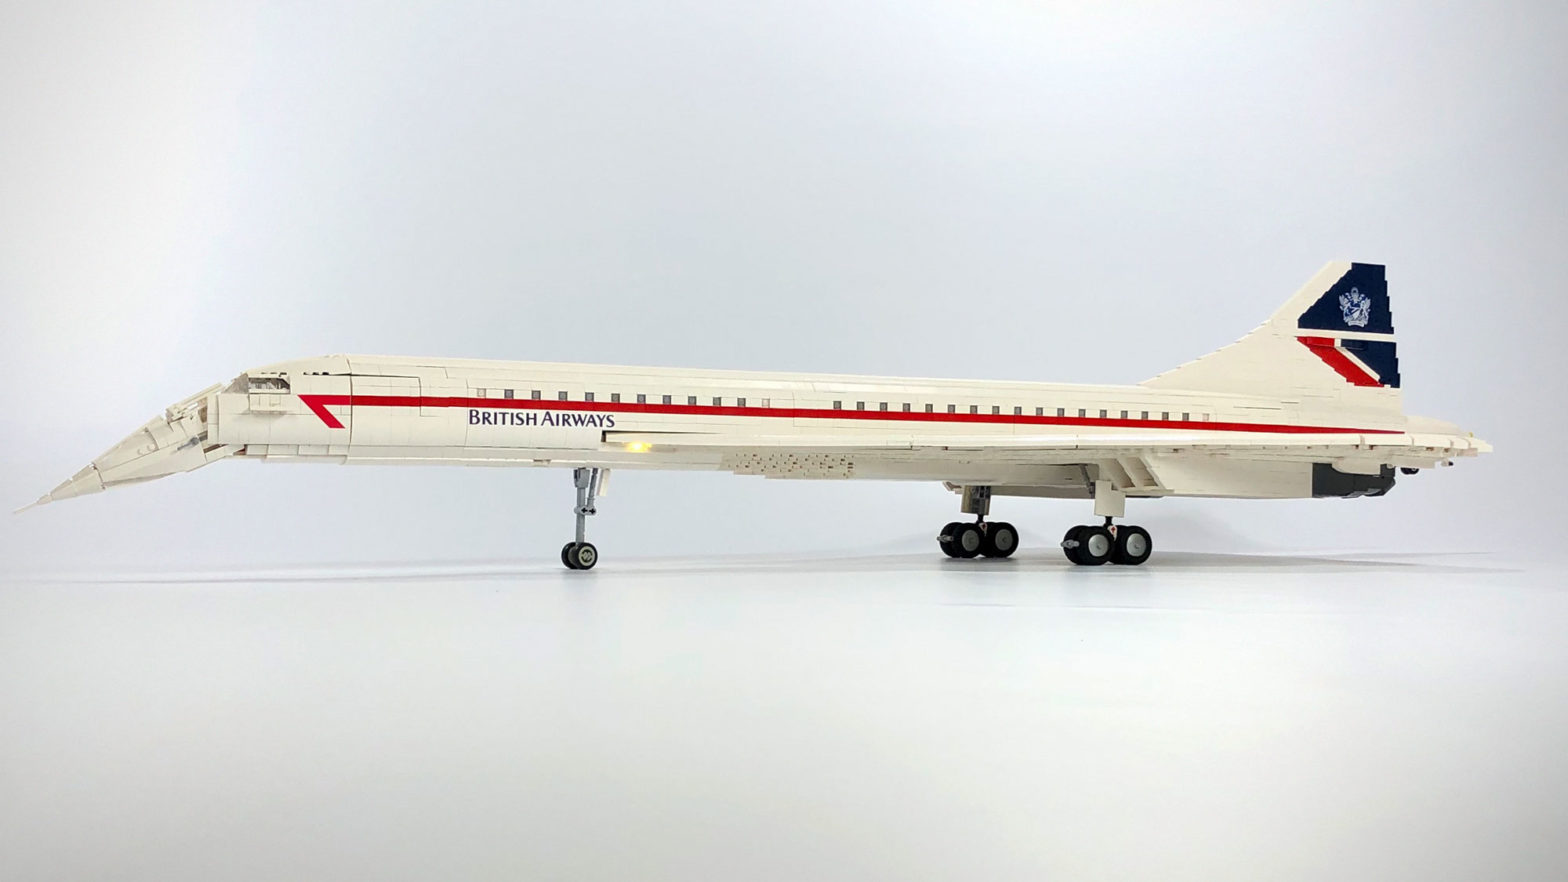 6000-Piece Custom LEGO Concorde Build